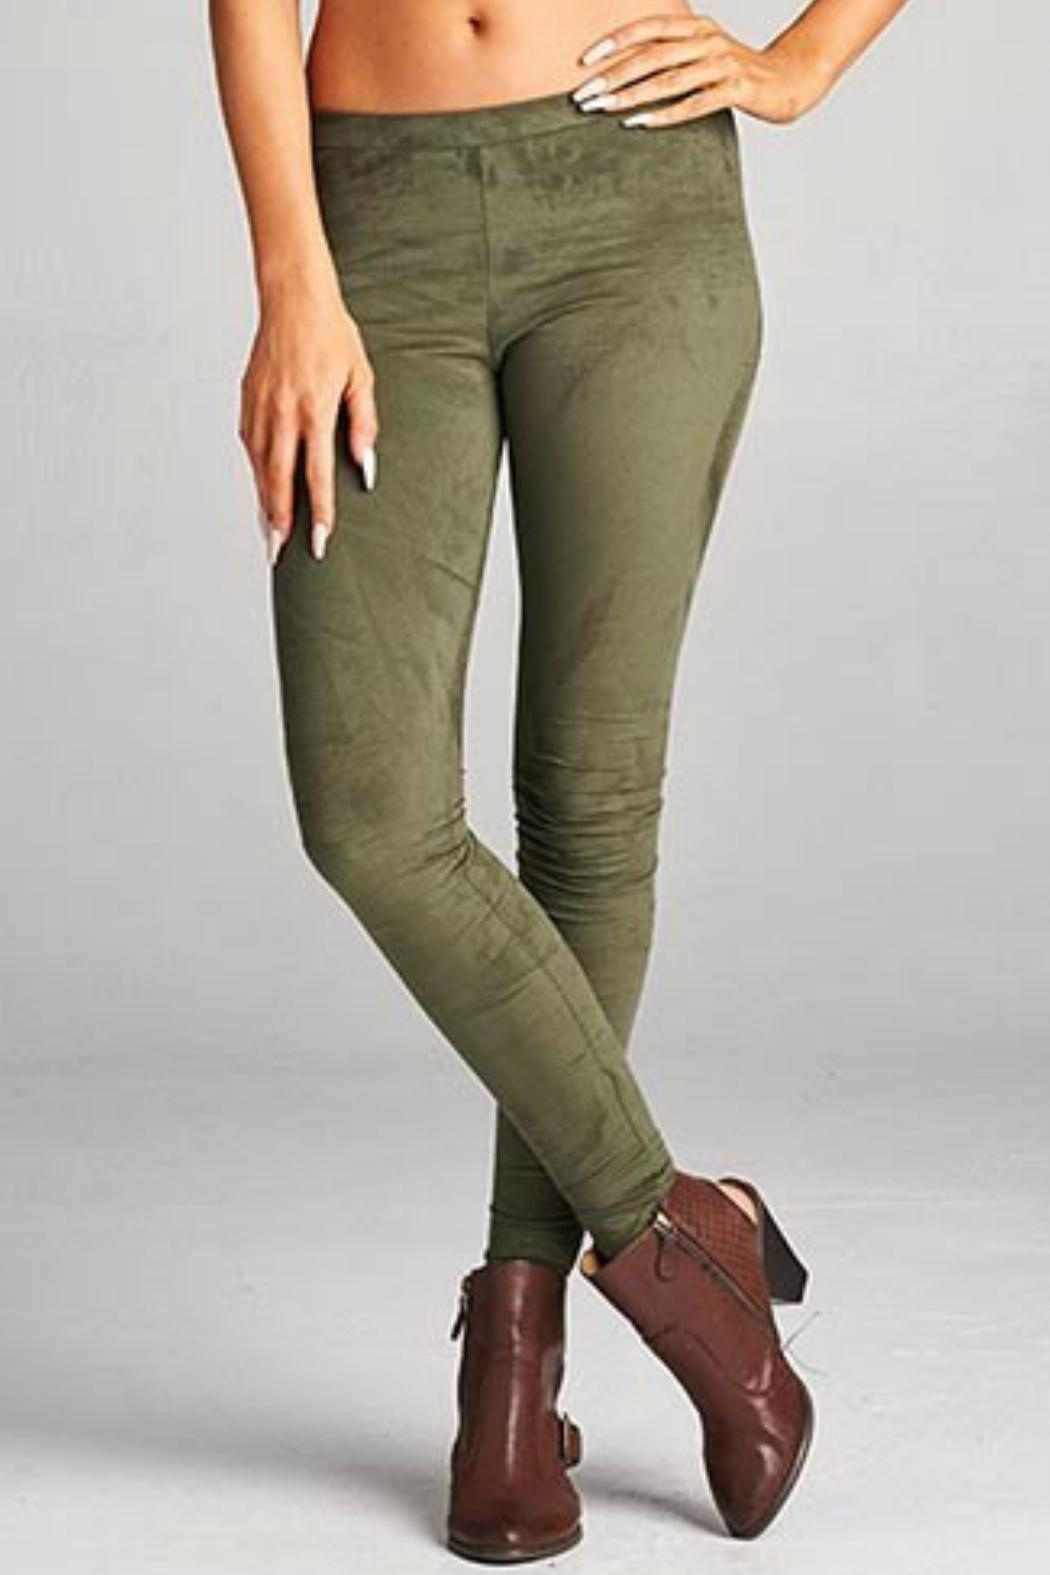 vanilla bay Faux Suede Leggings from San Diego by Laundry — Shoptiques 3bbed5490